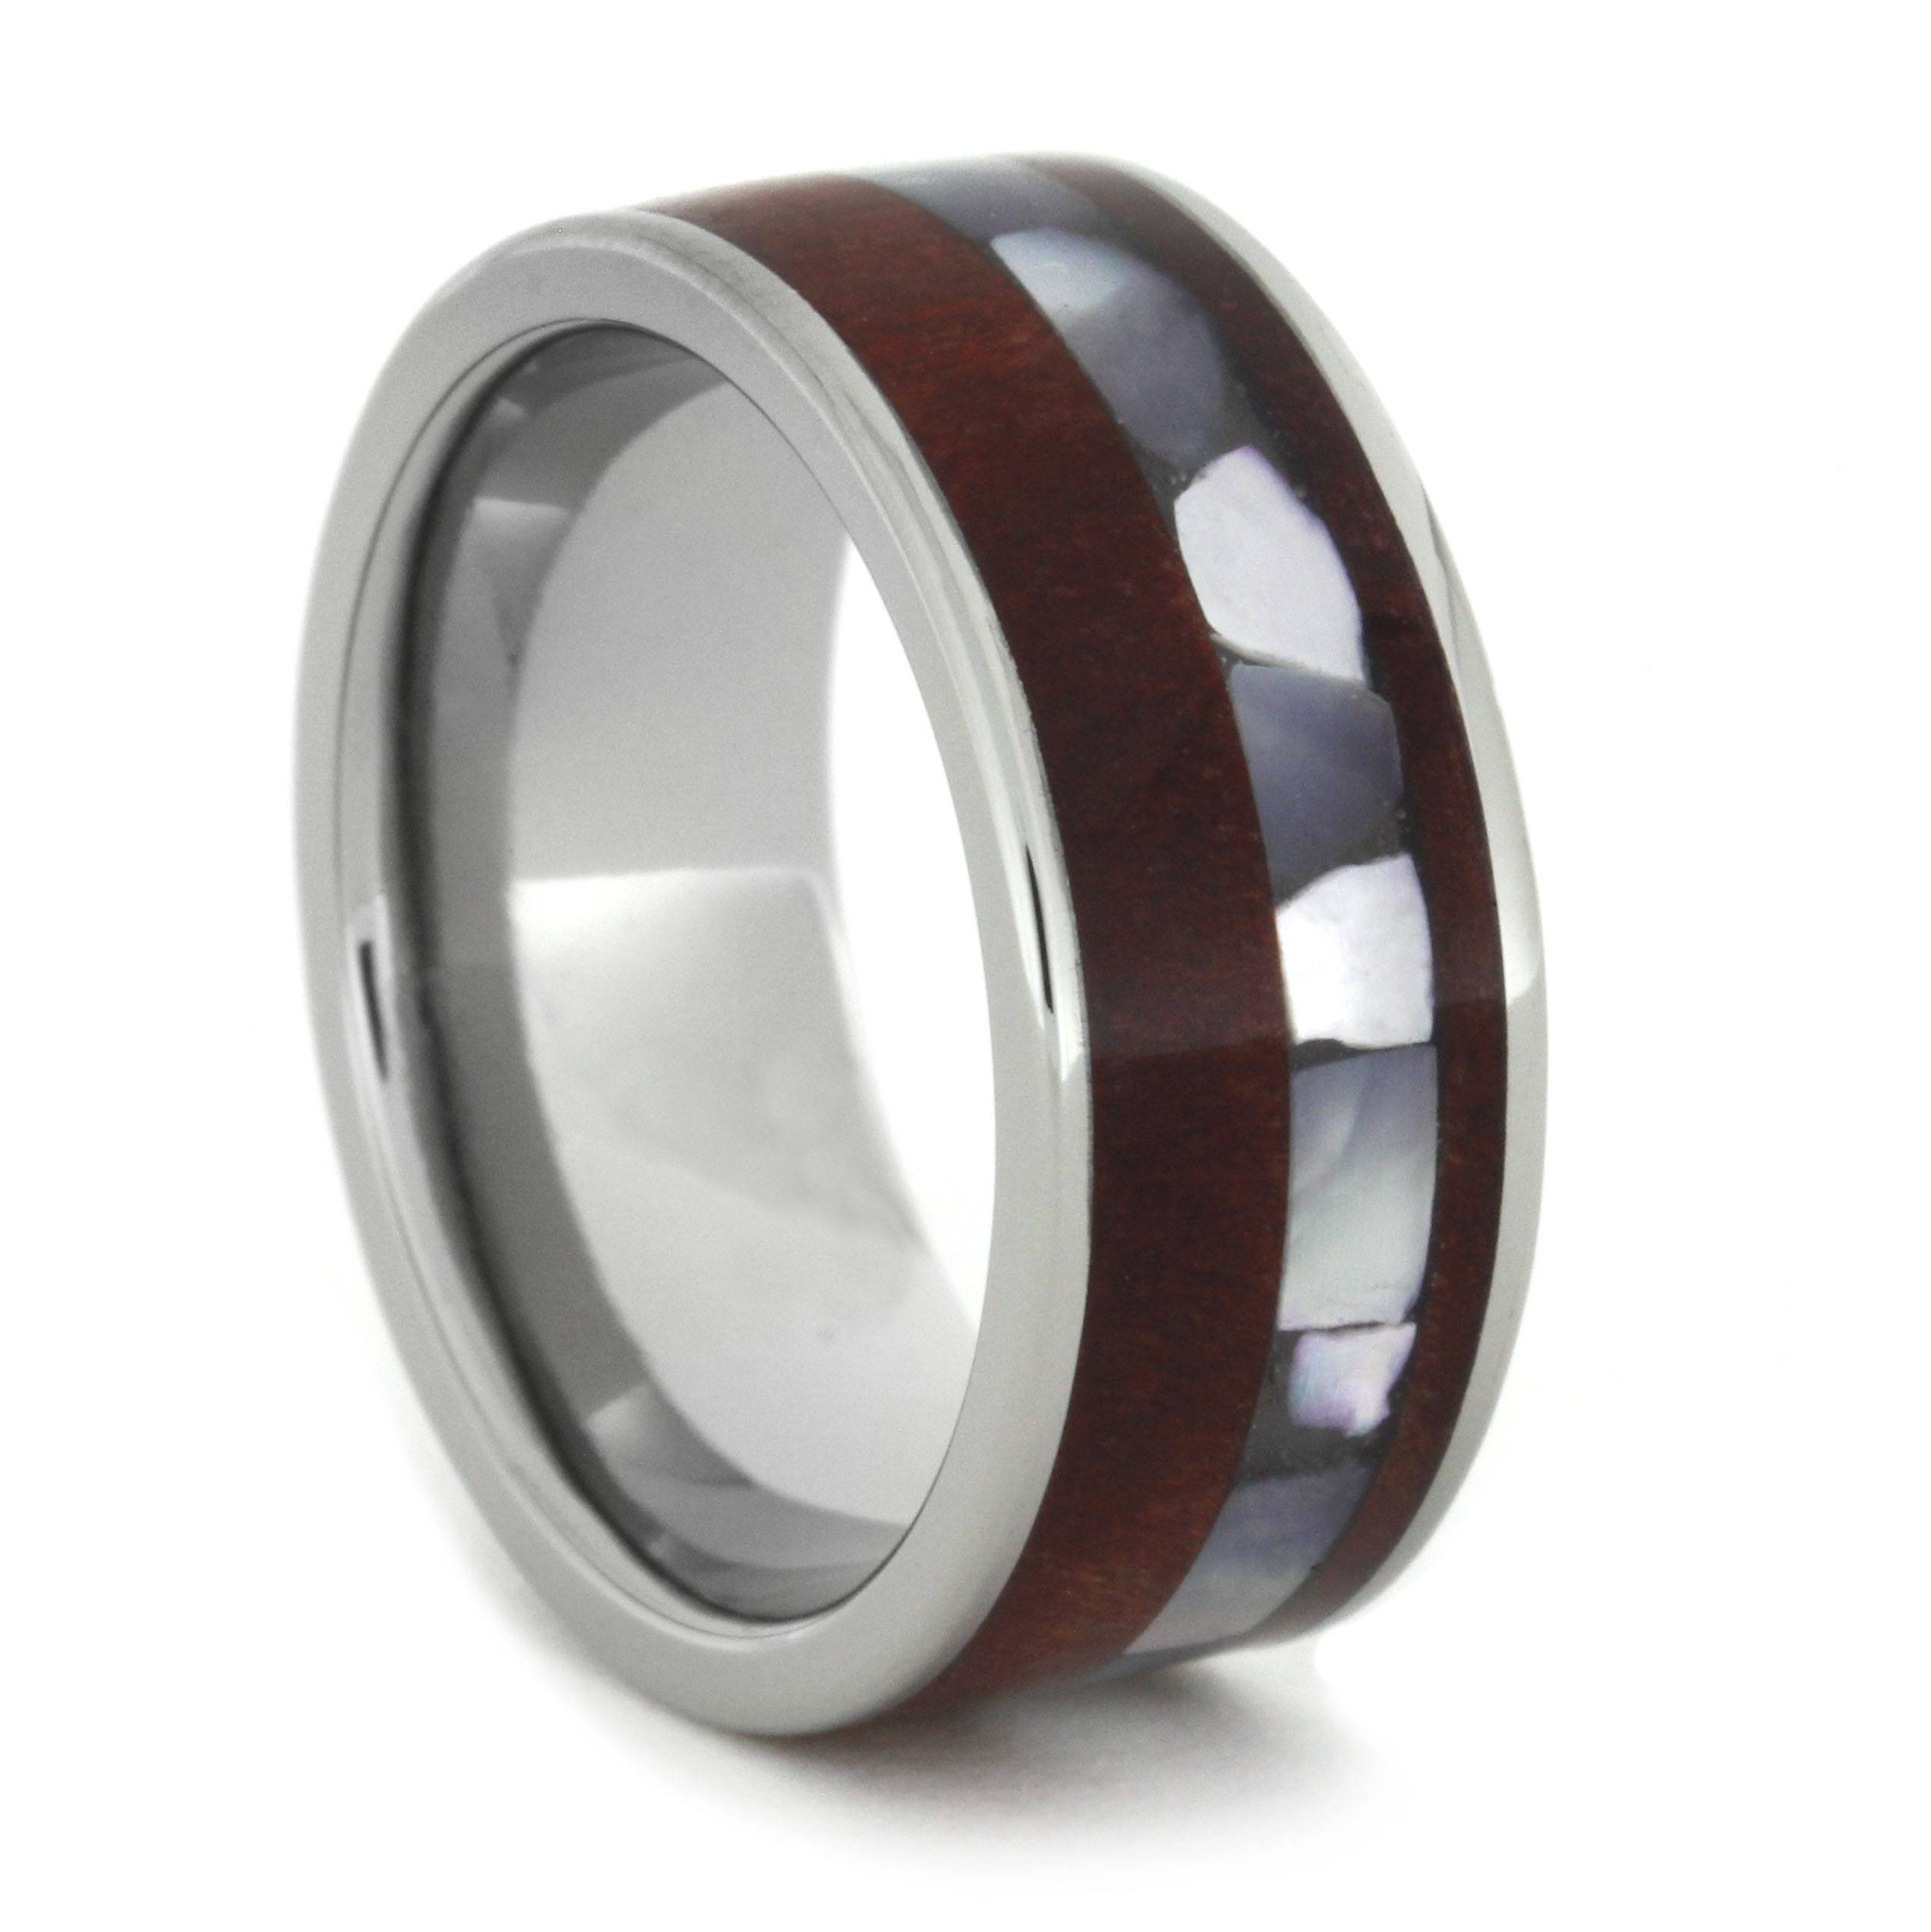 Mens mother of pearl ring